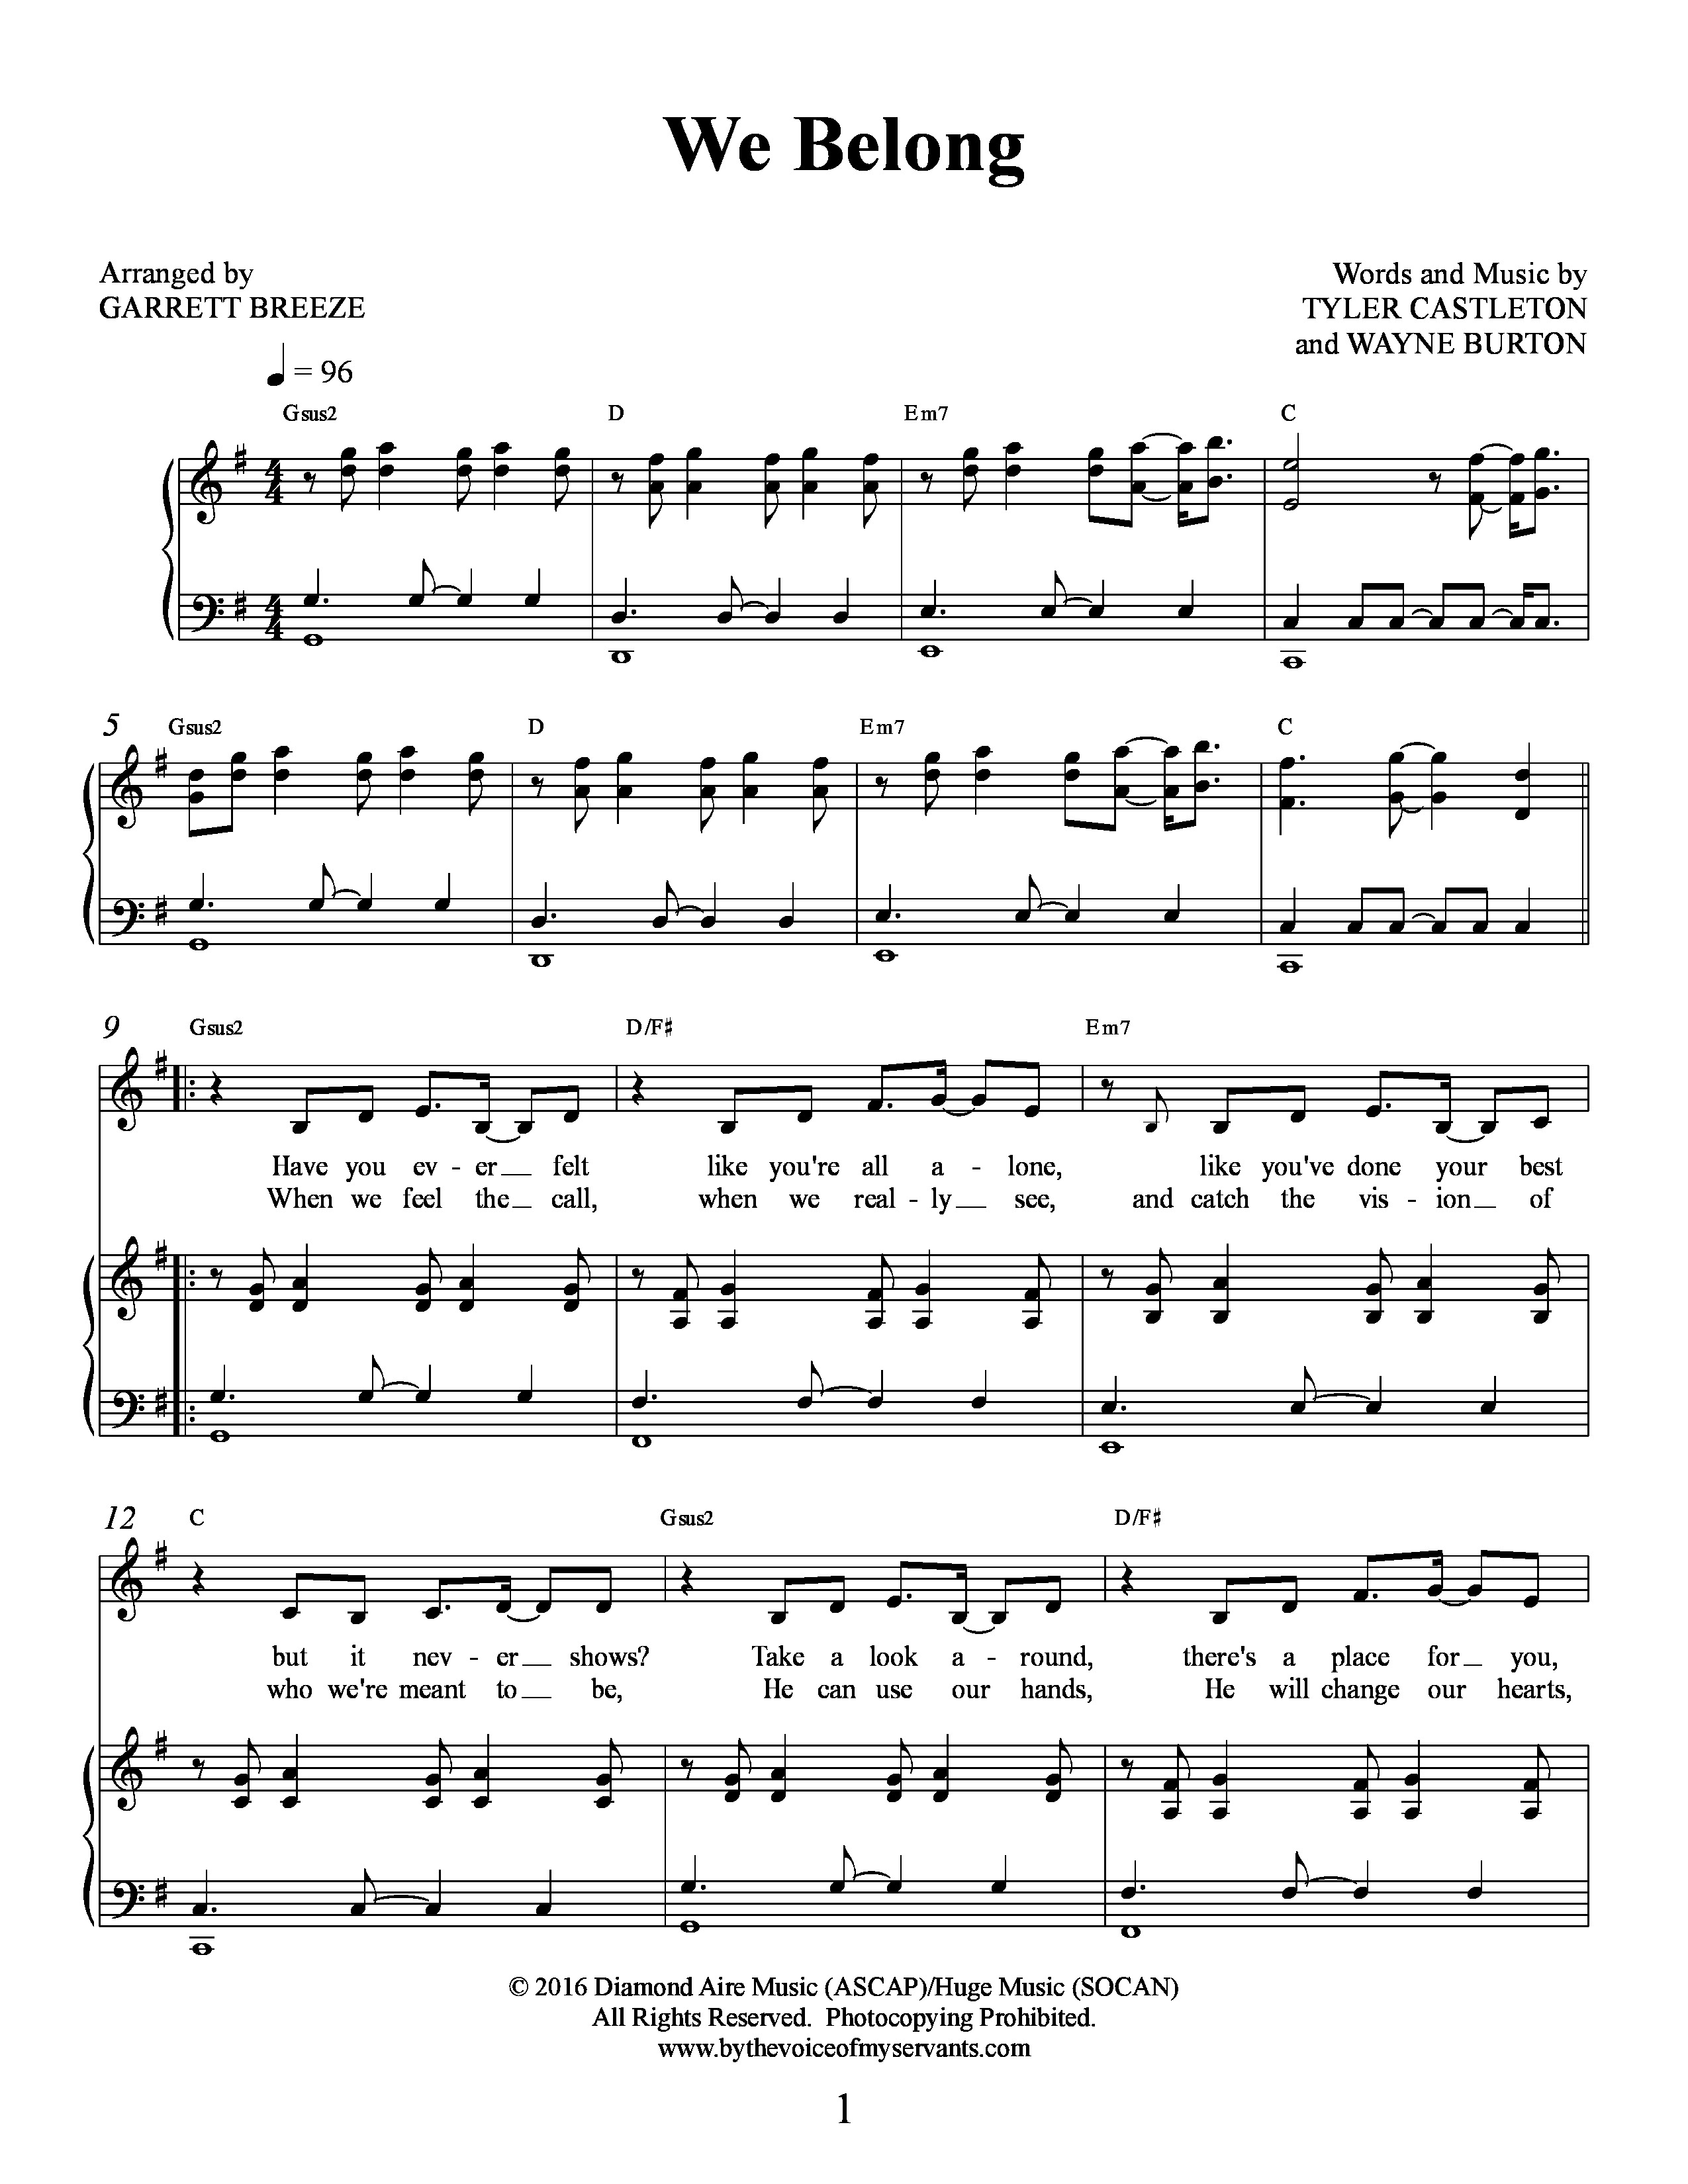 Tyler castleton sheet music preview hexwebz Image collections